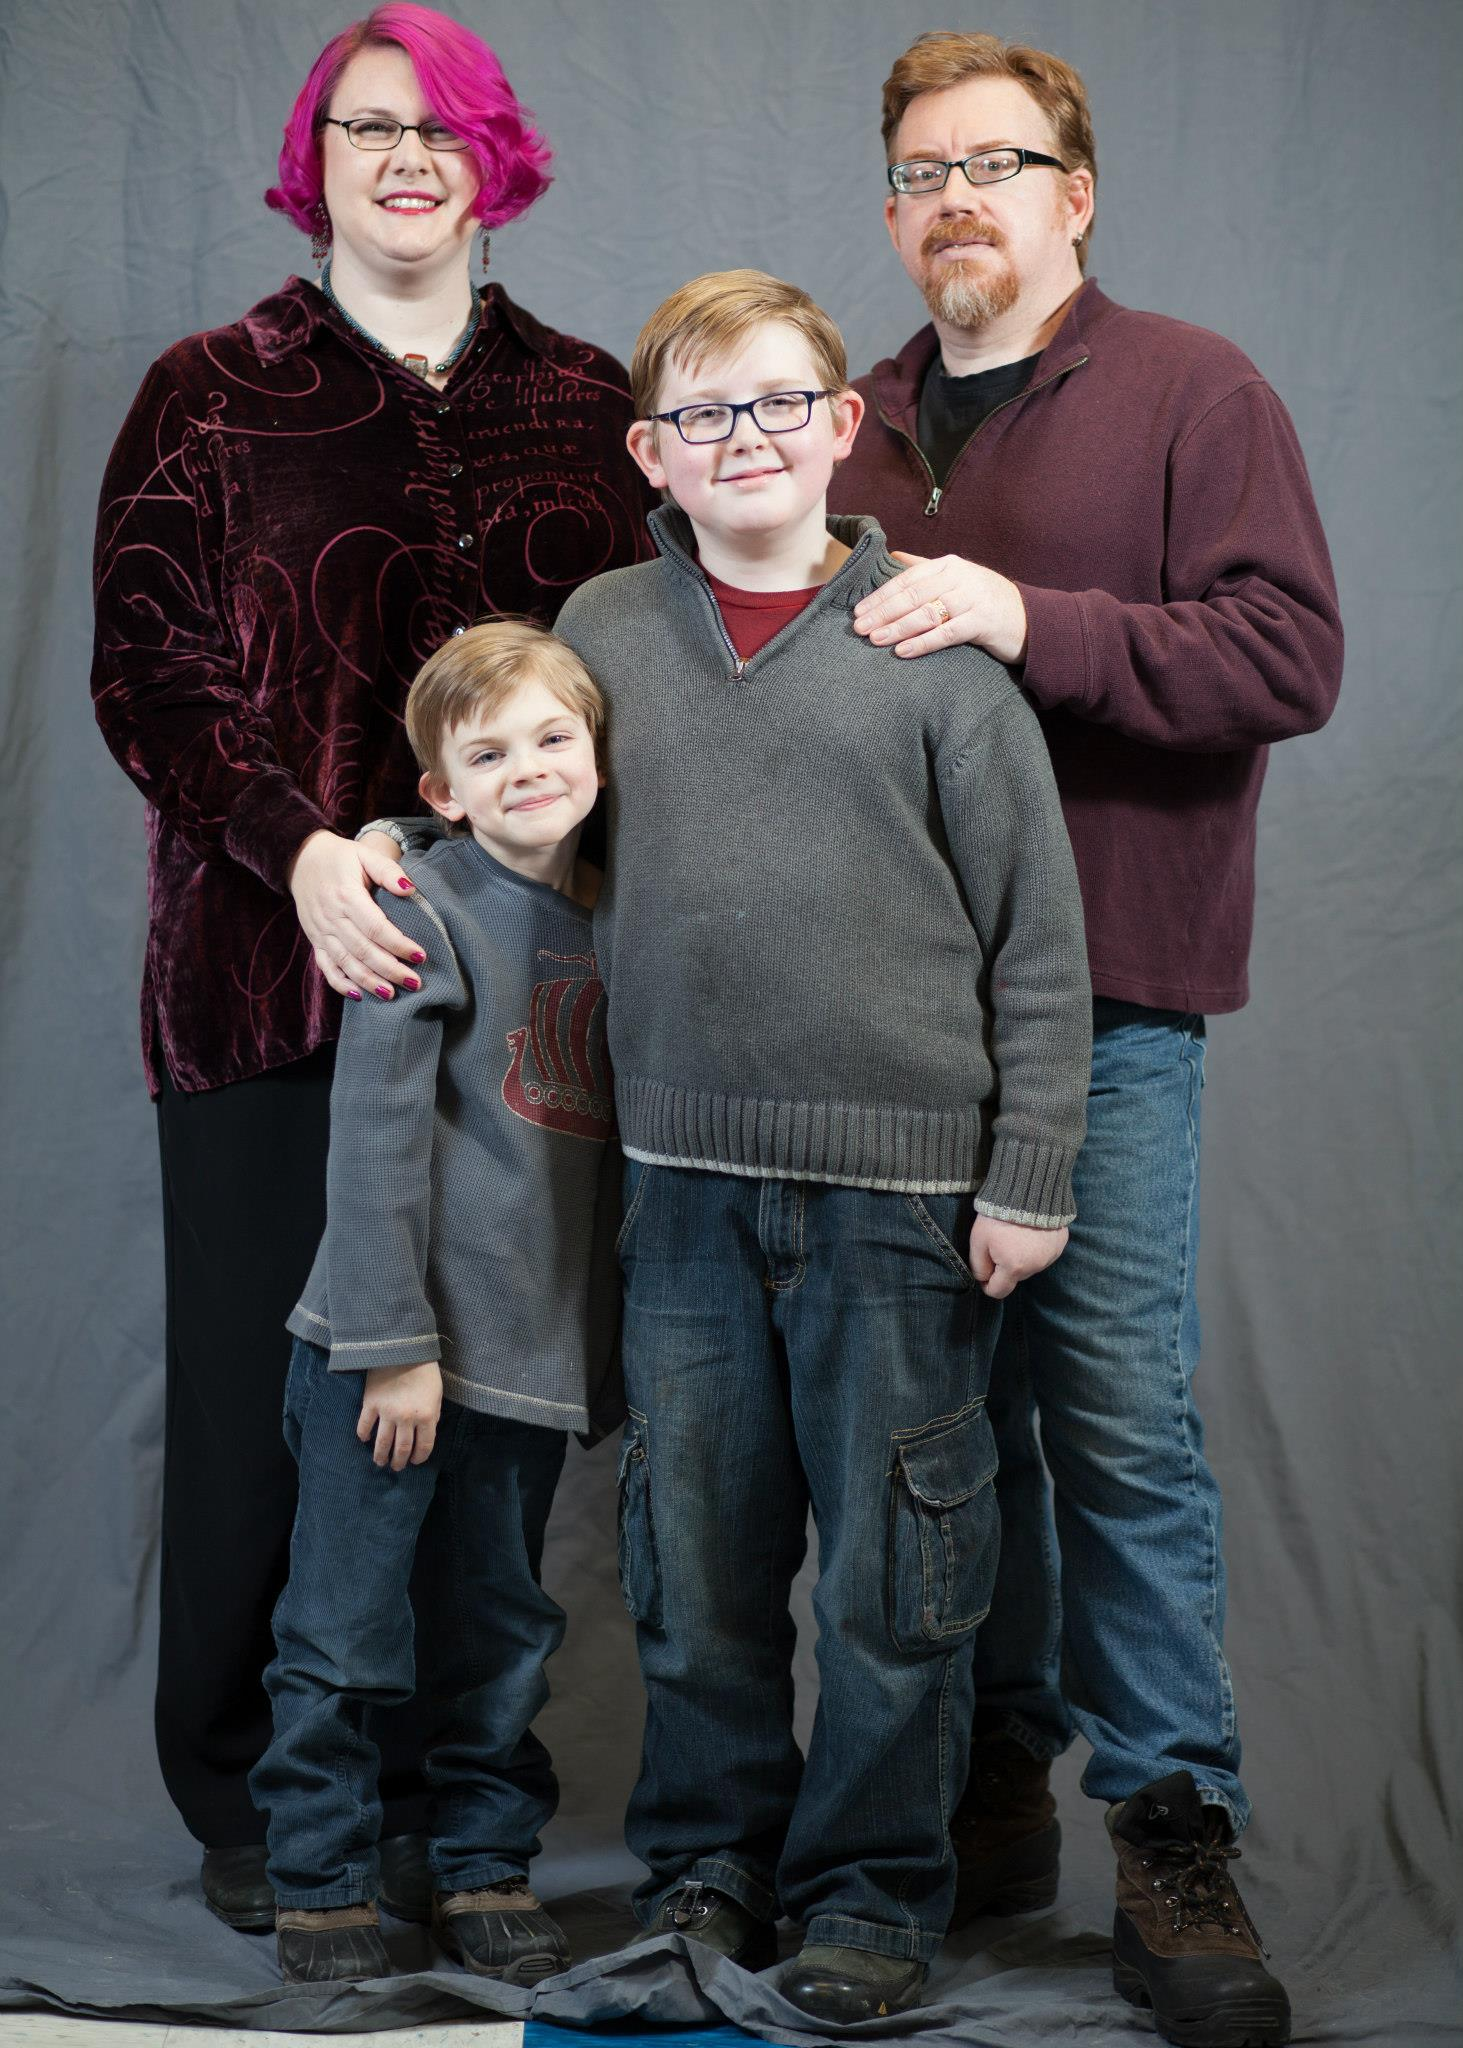 Official Family Shot – Jess Banks (Top Left), Cam Banks (Top Right), Griffin (Lower Left), Connor (Lower Right).